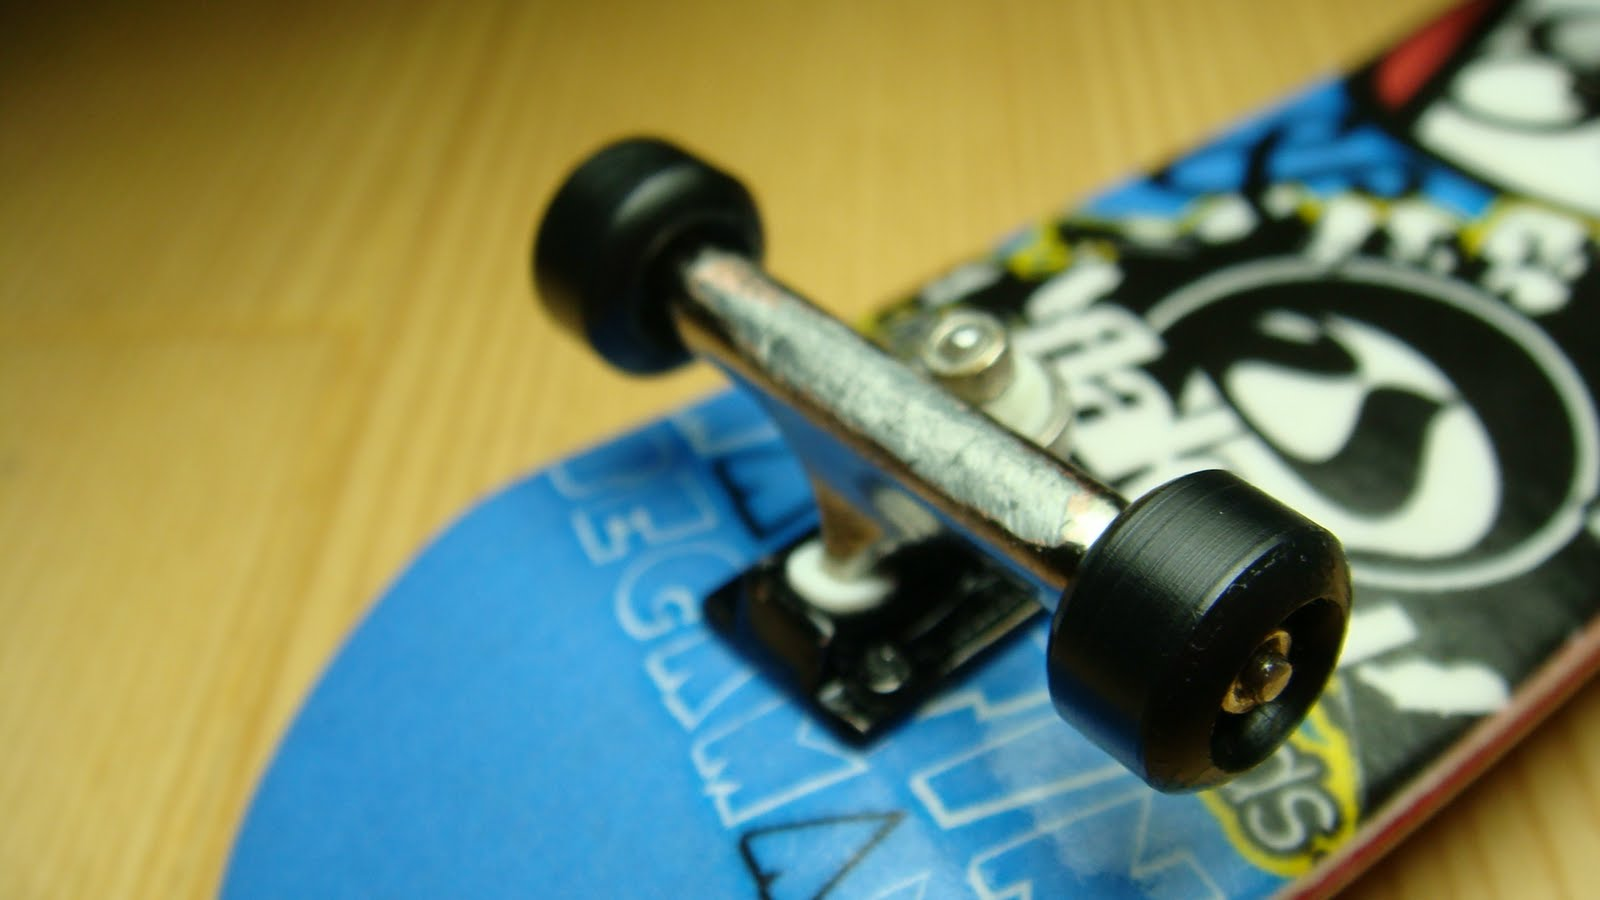 Fingerboard tv daily fingerboard news yeeeee new substance wheels out now check out those pics voltagebd Choice Image